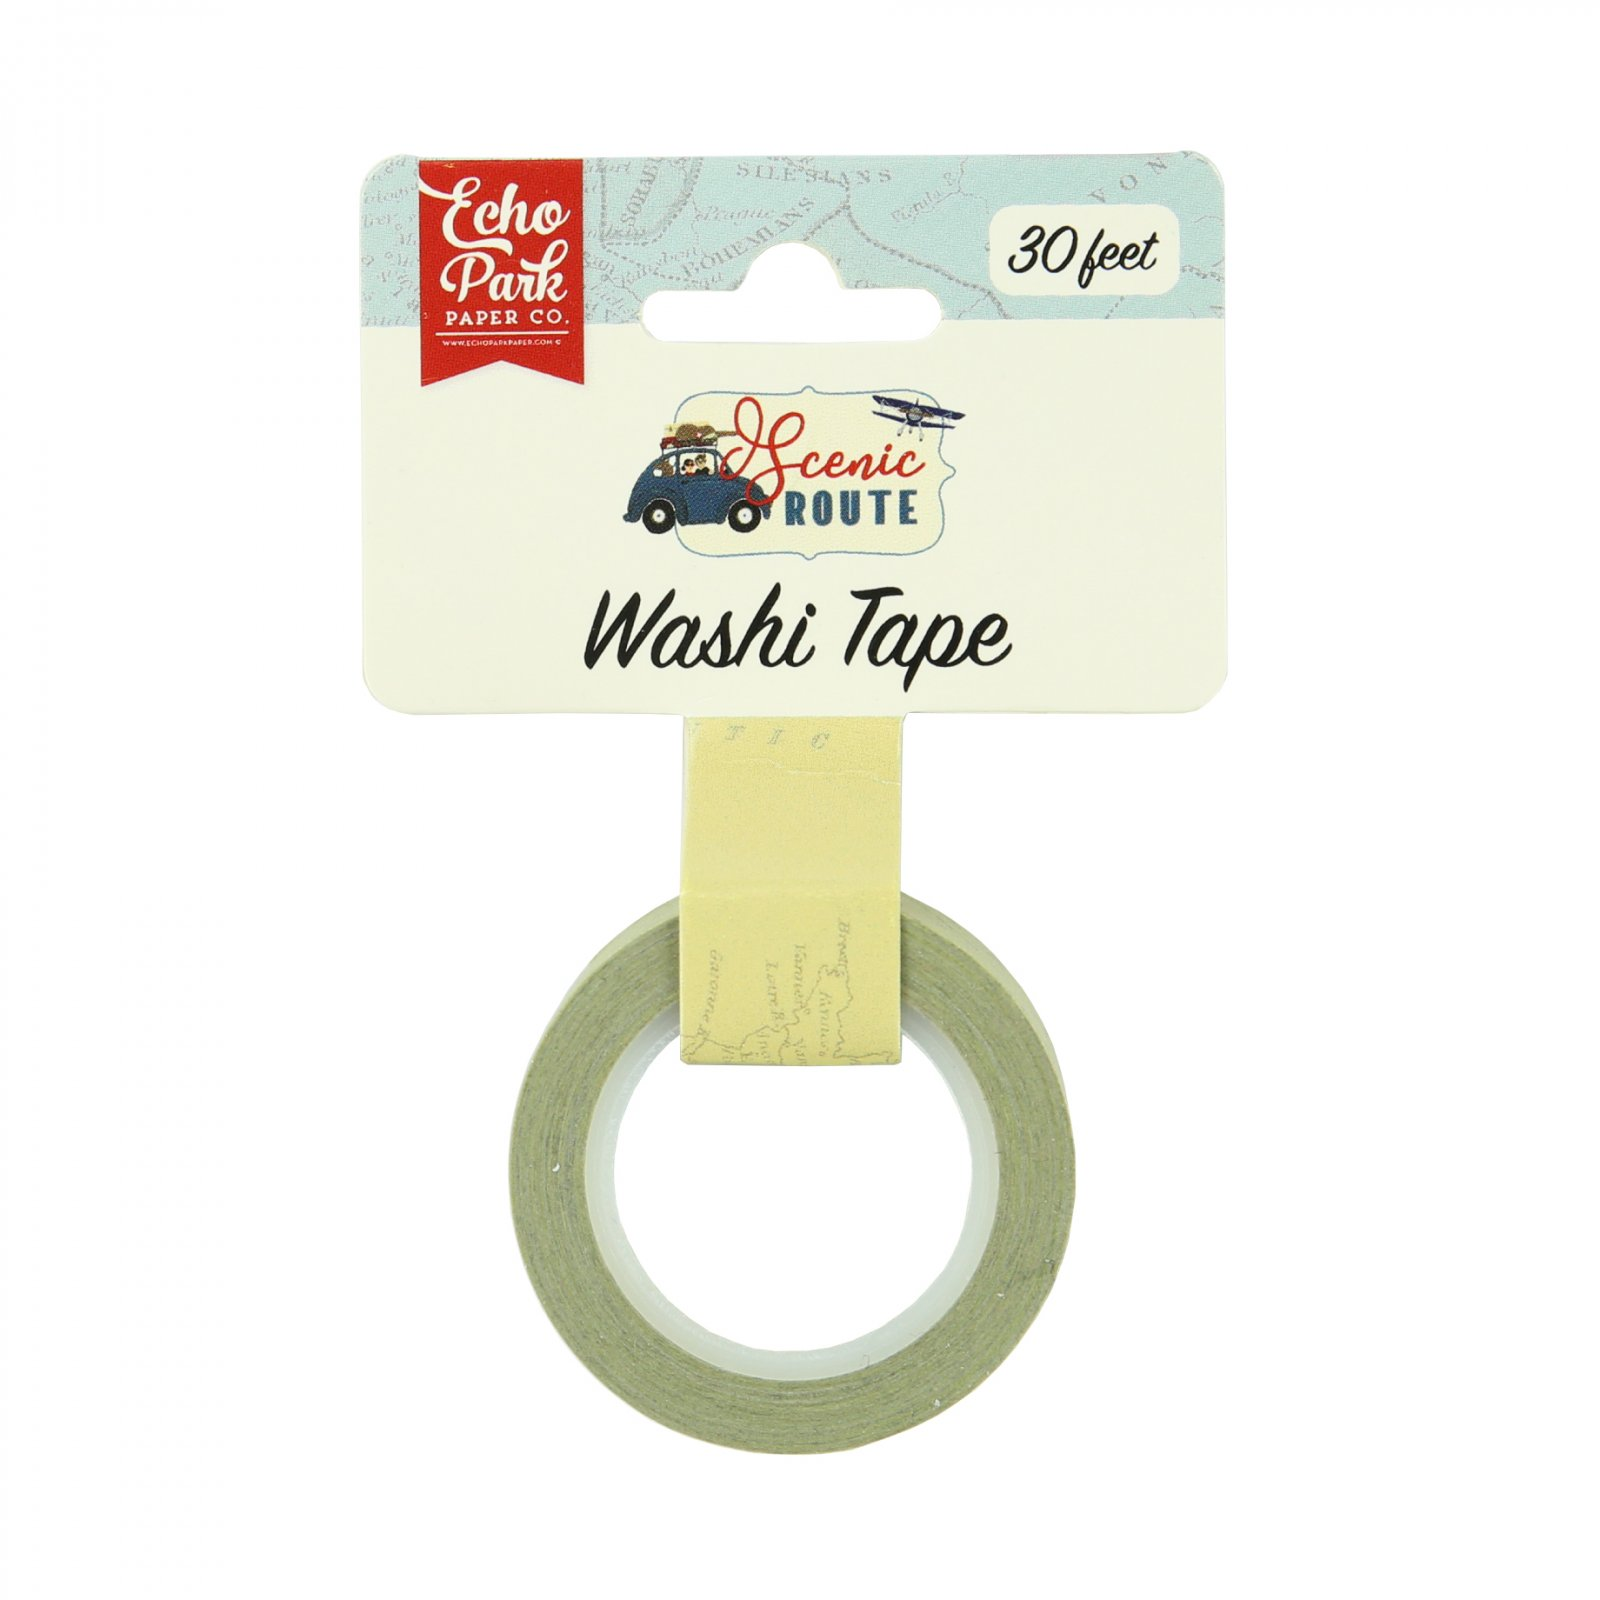 ^Echo Park - Washi Tape - Scenic Route, Map